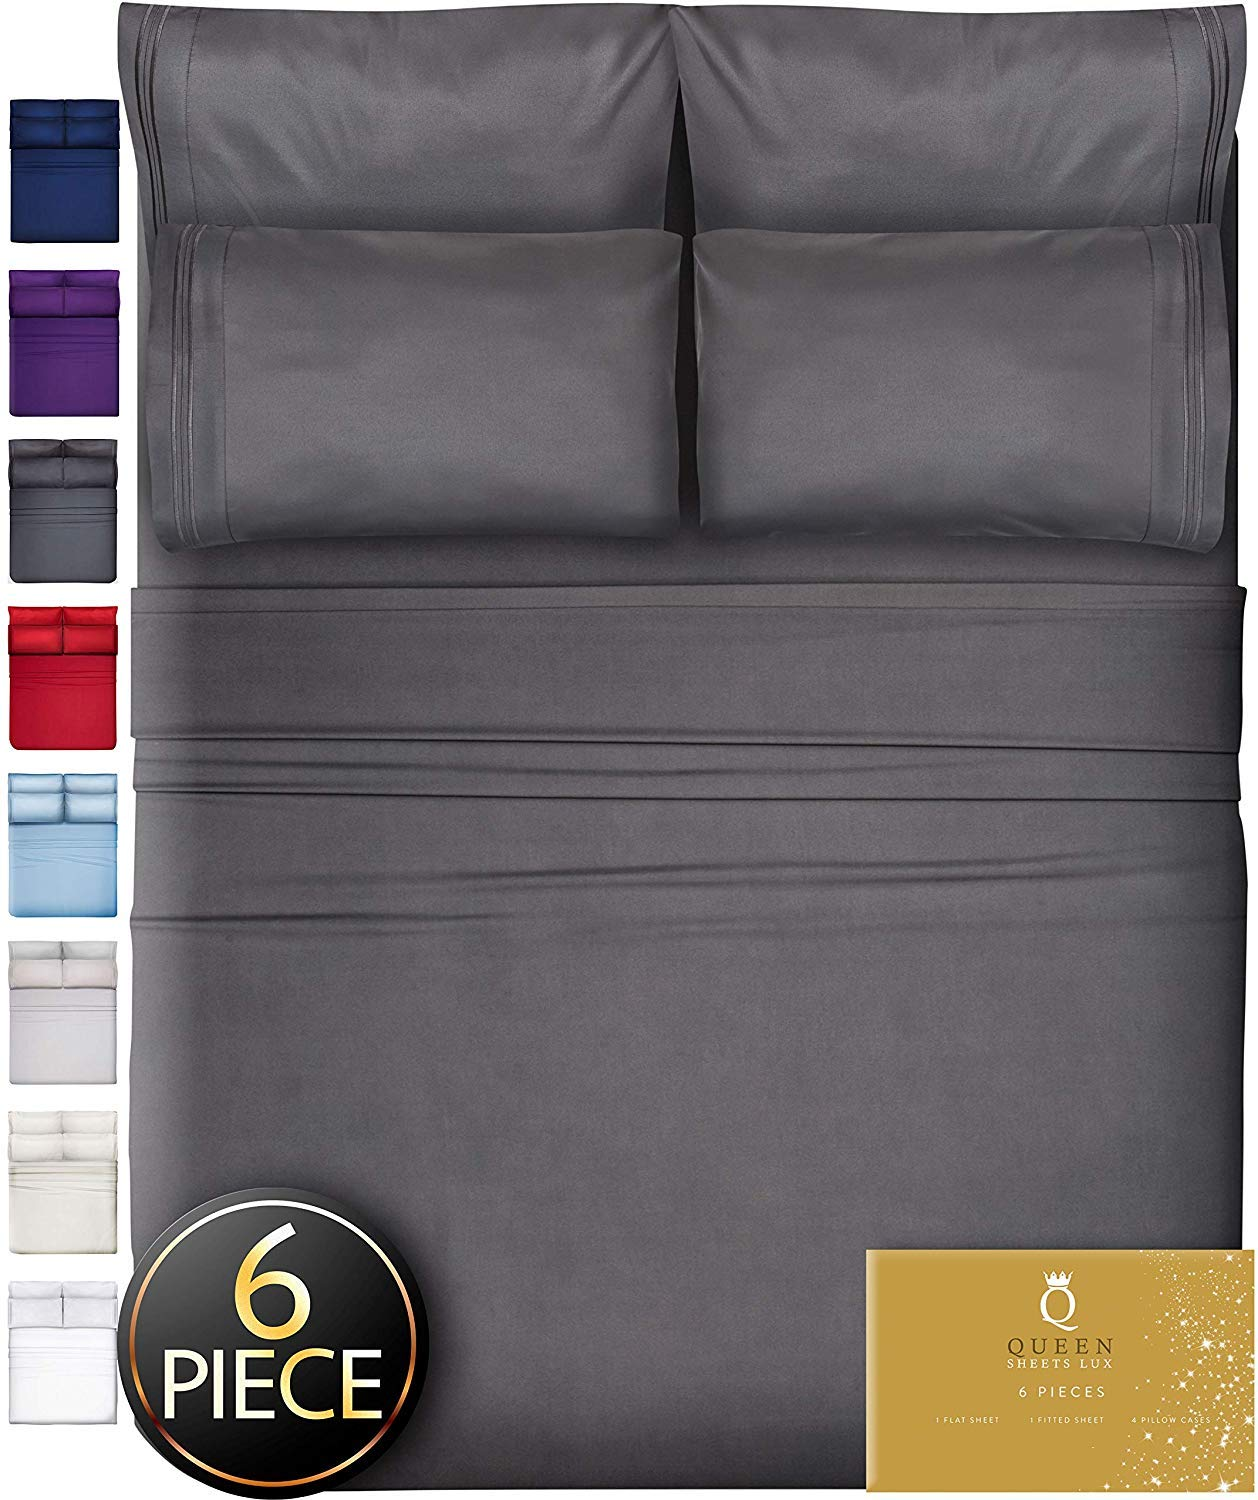 Piece King Size Sheets Pockets